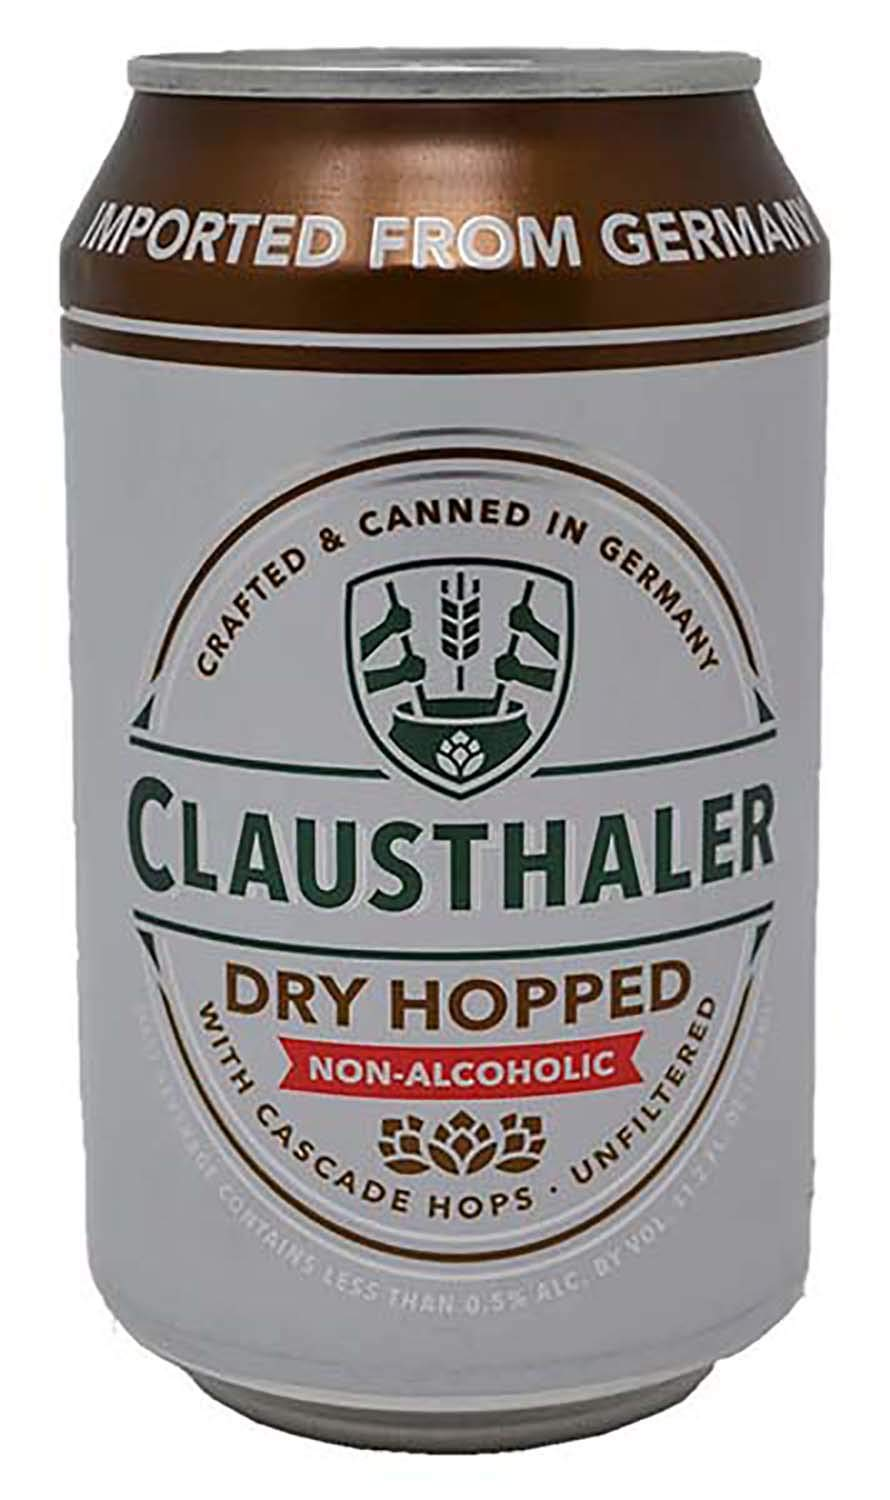 Clausthaler Dry Hopped Non-Alcoholic Beer, 11.2 fl oz (24 Cans)